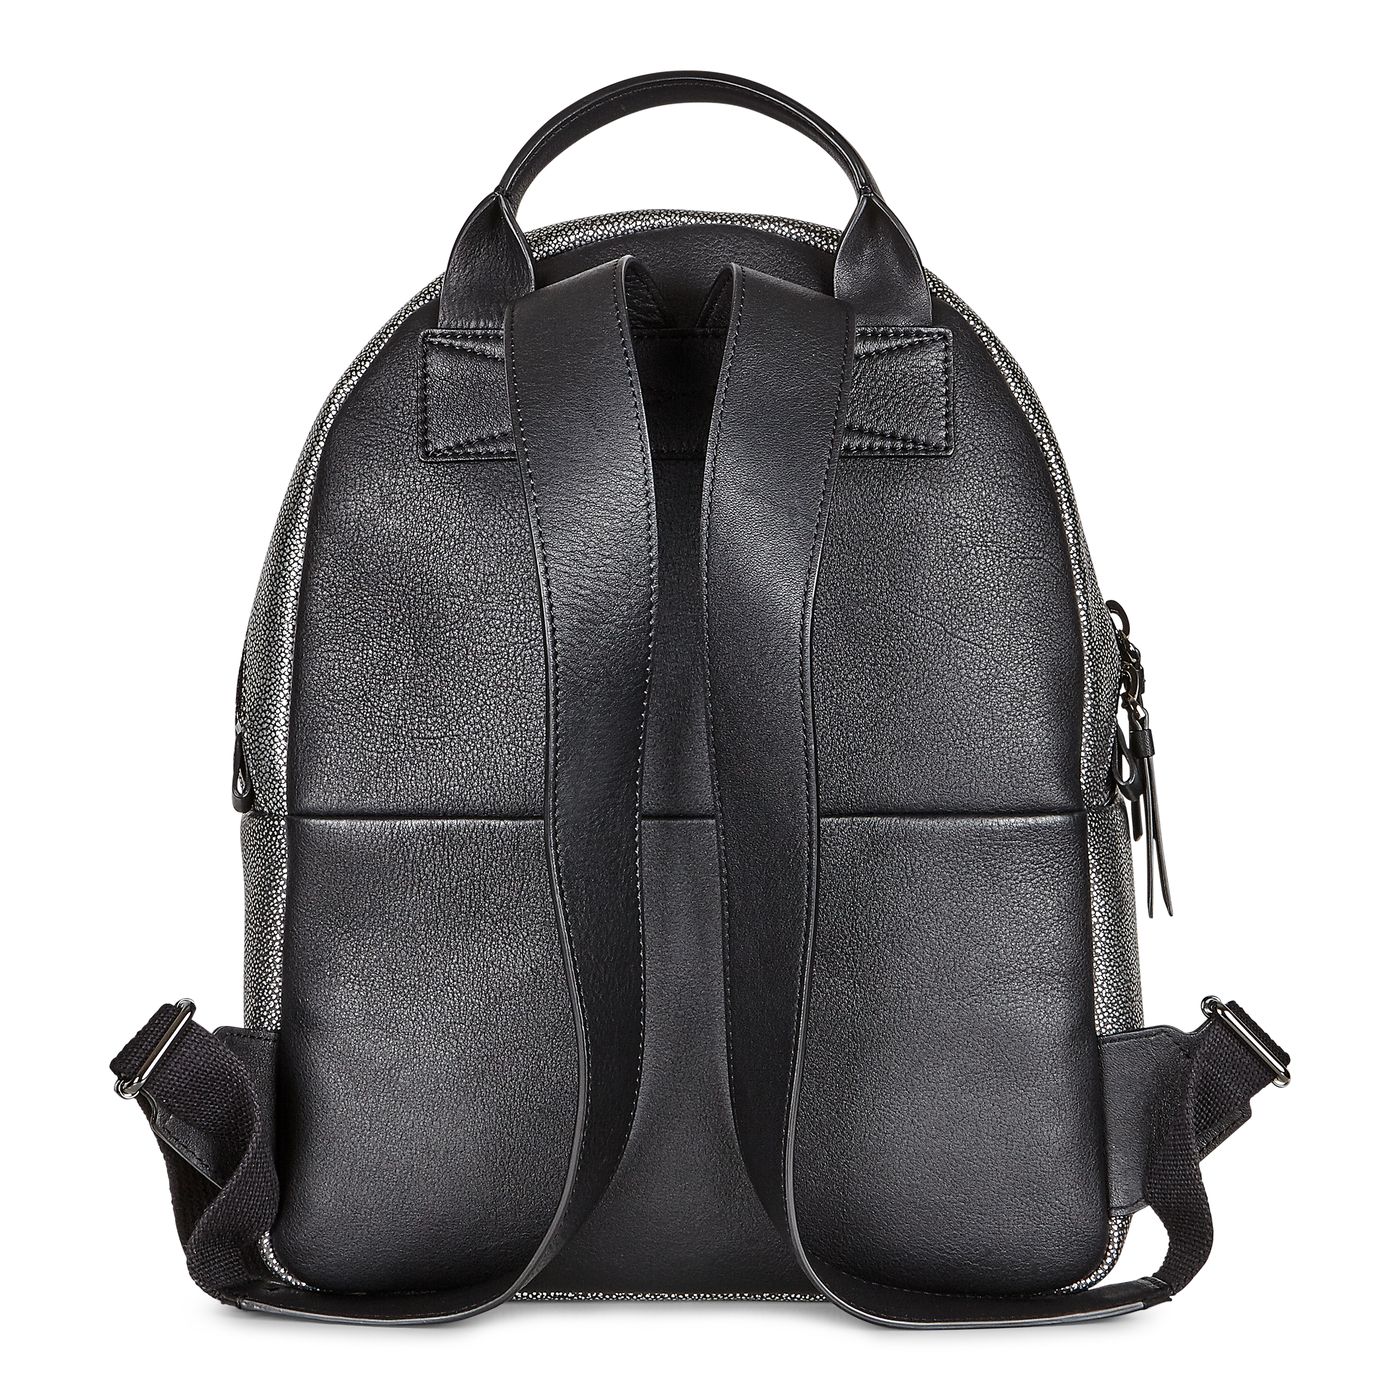 ECCO SP3 Metallic Backpack